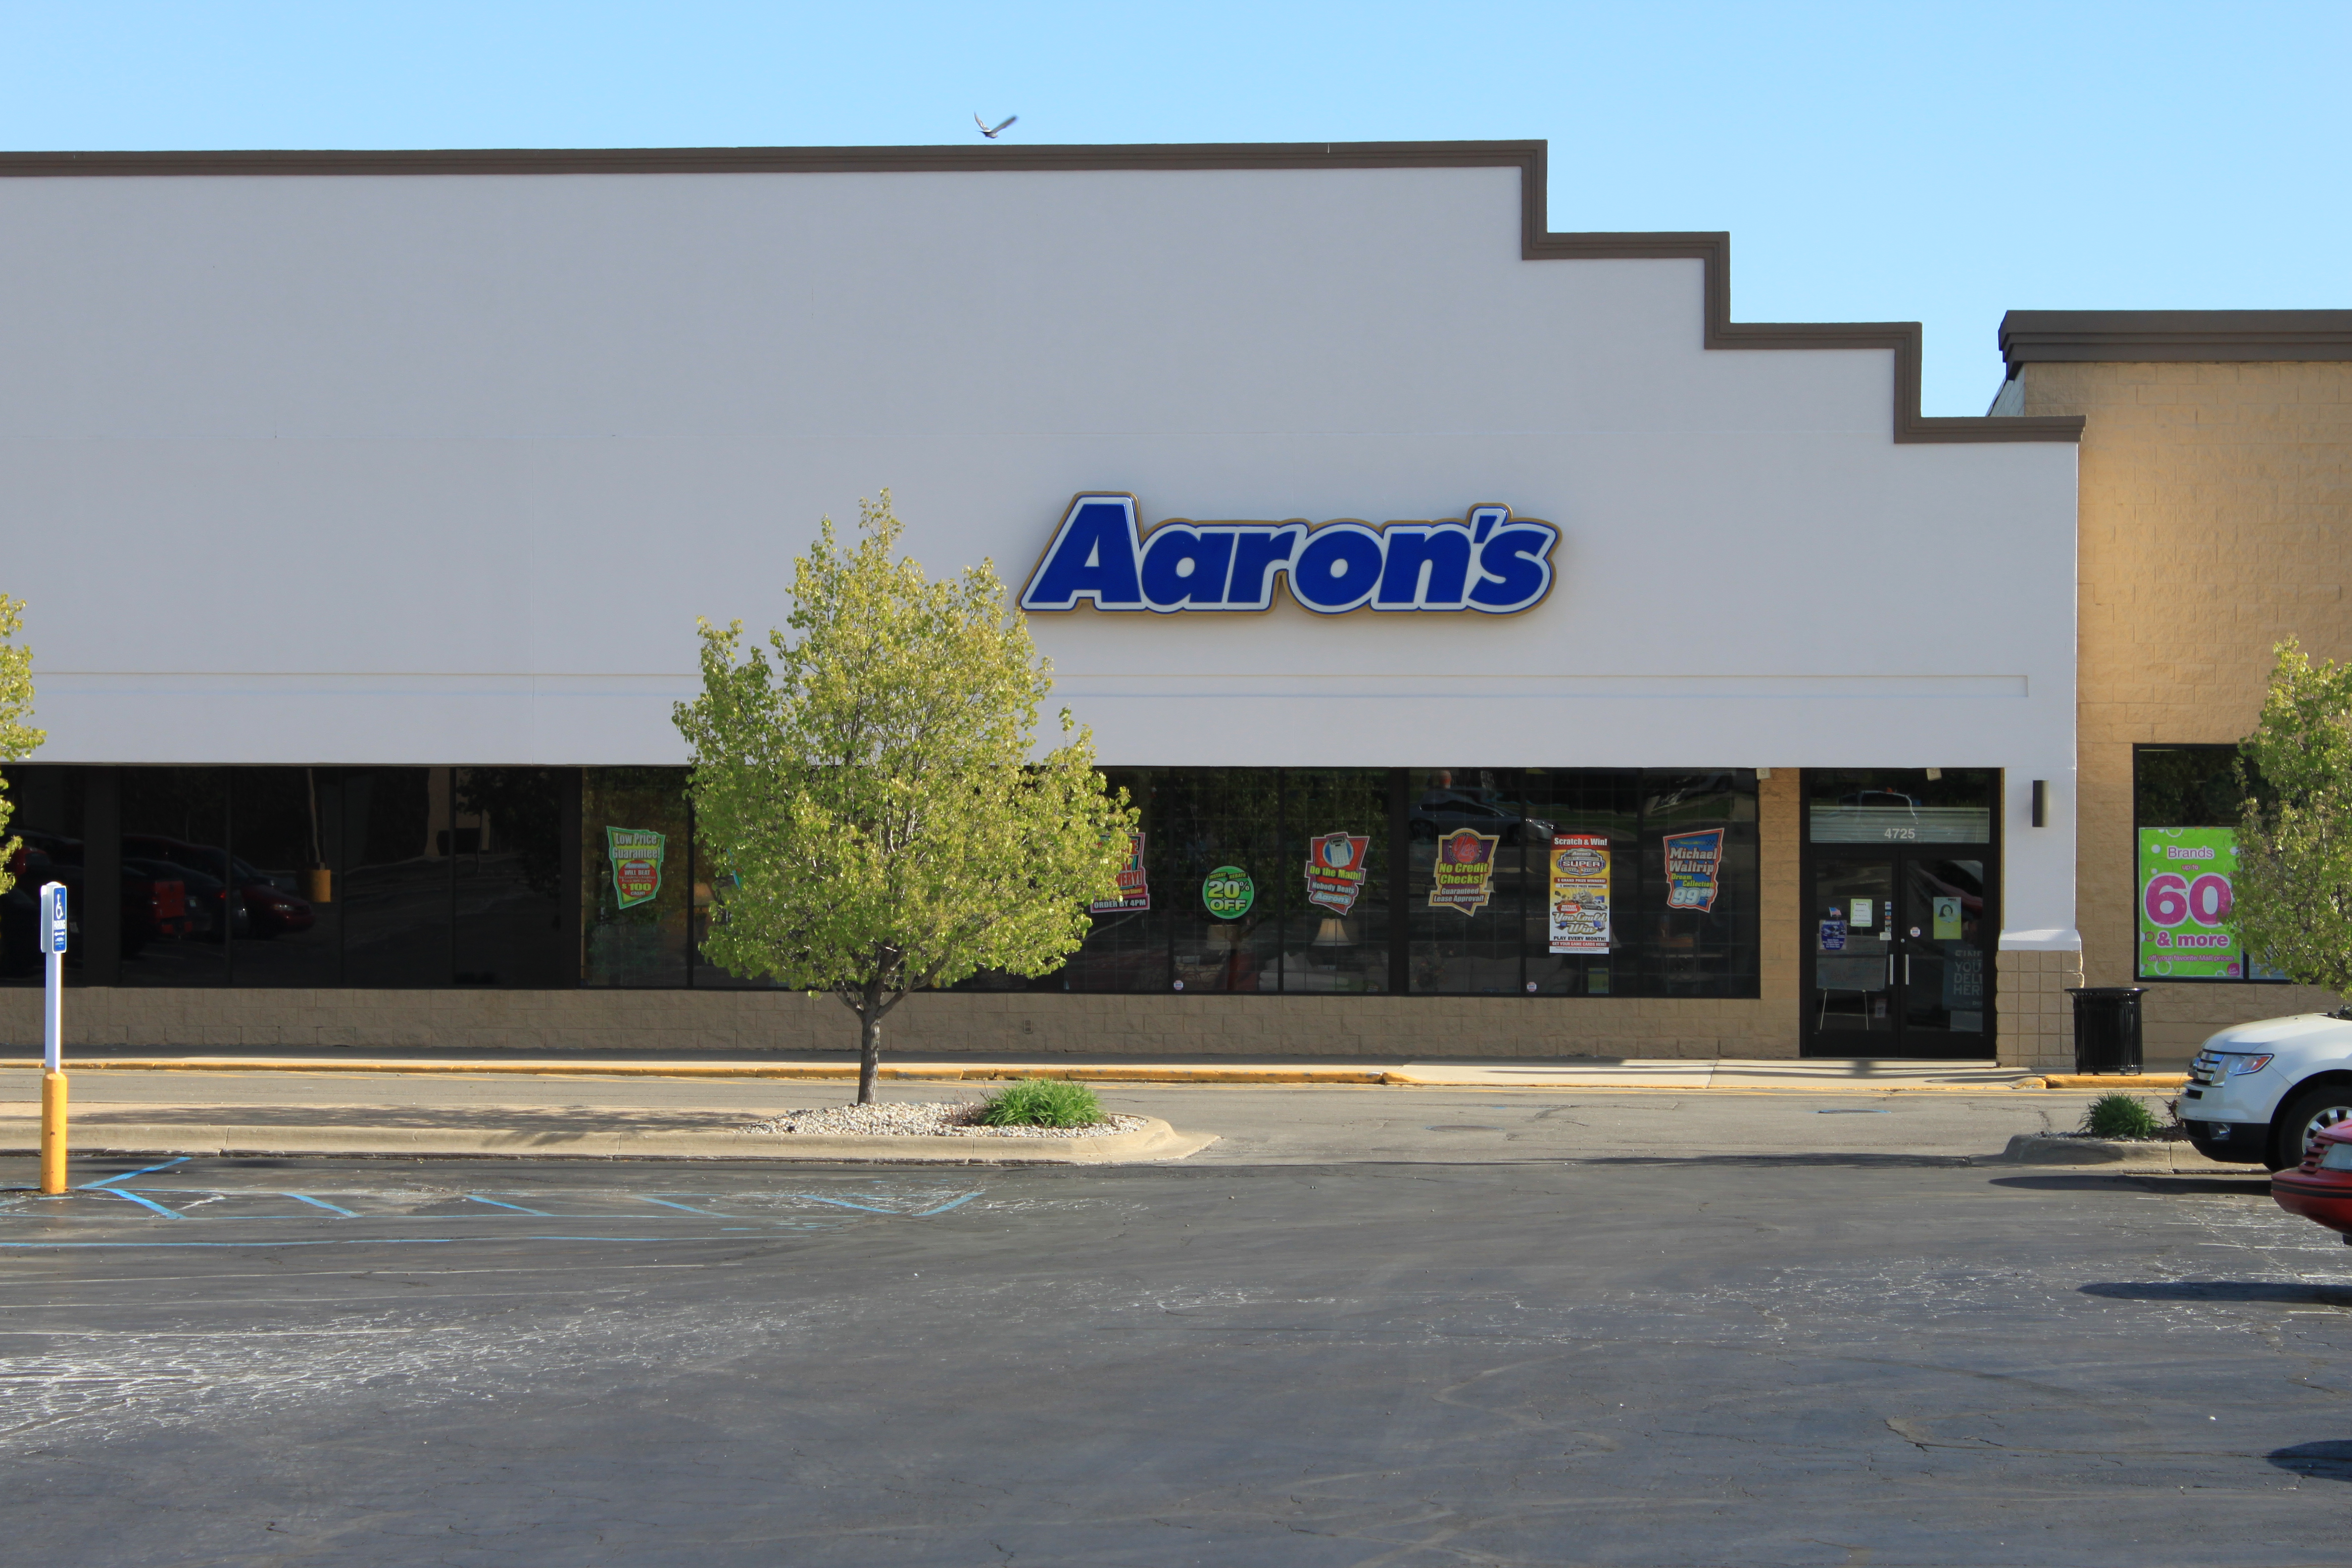 Alf Img Showing Aarons Store